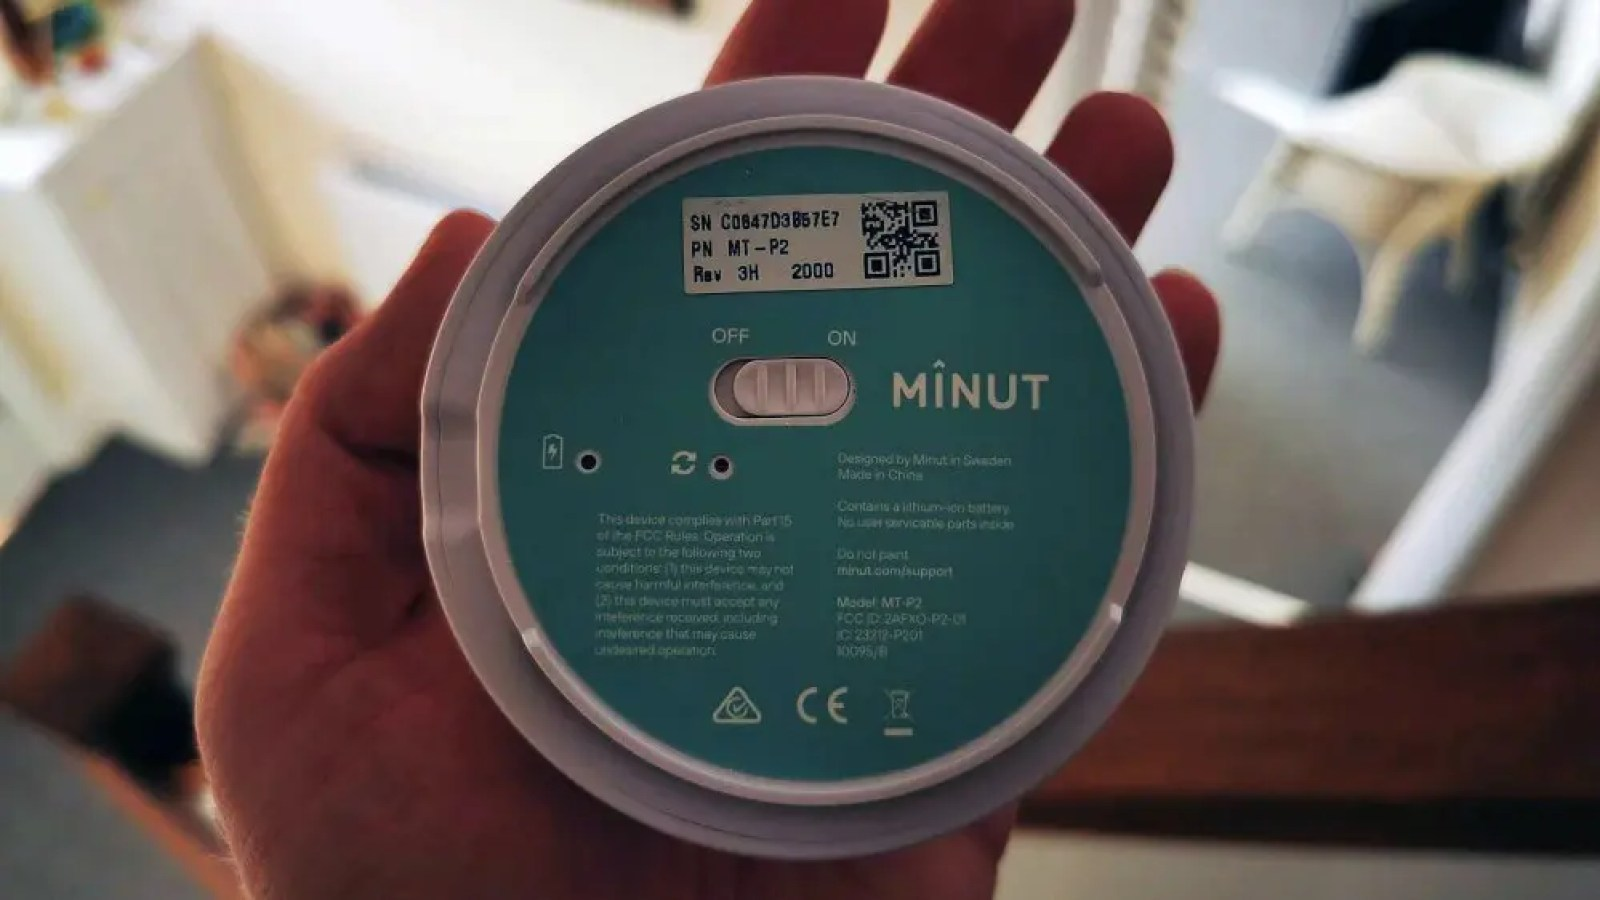 Minut controls and label on underside of device